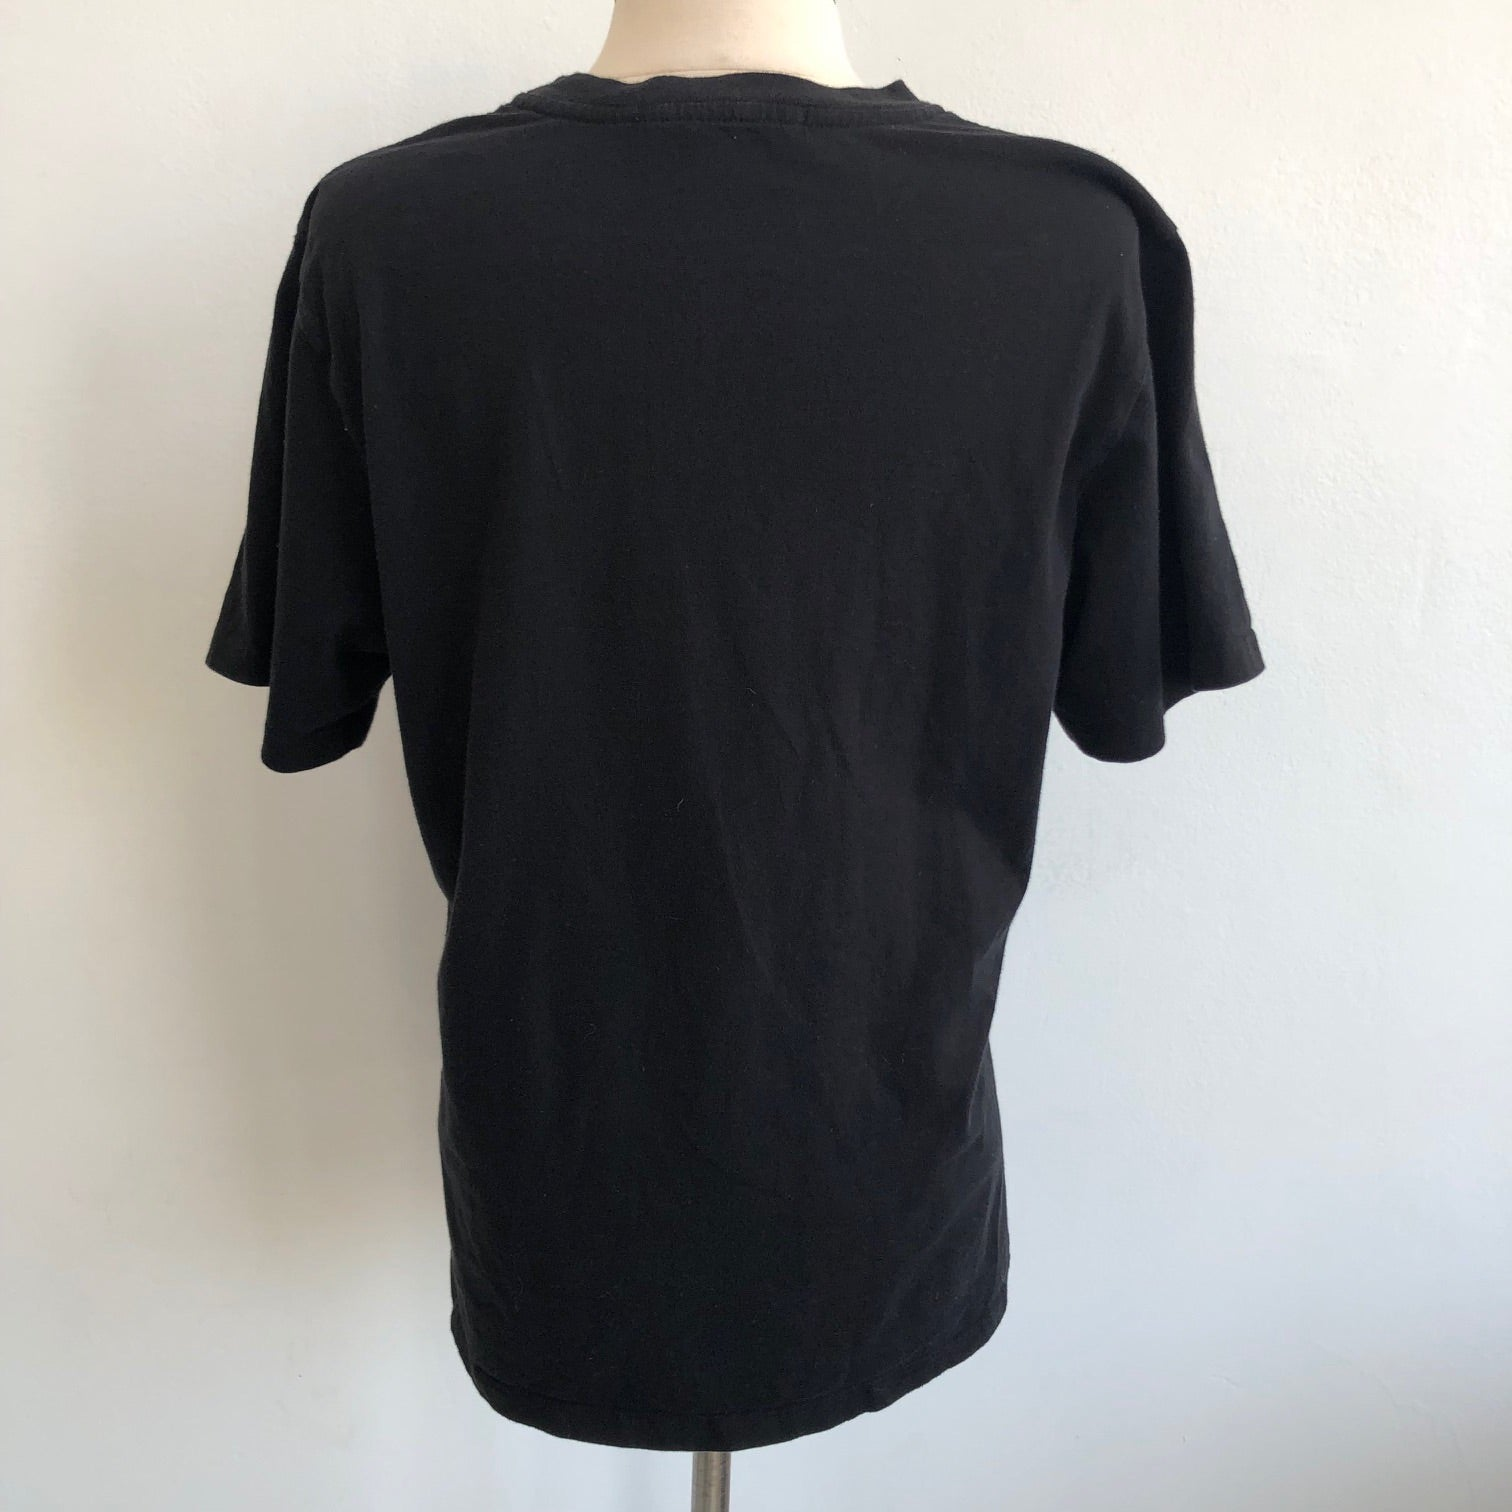 Proenza Schouler PSWL Care Label T-Shirt